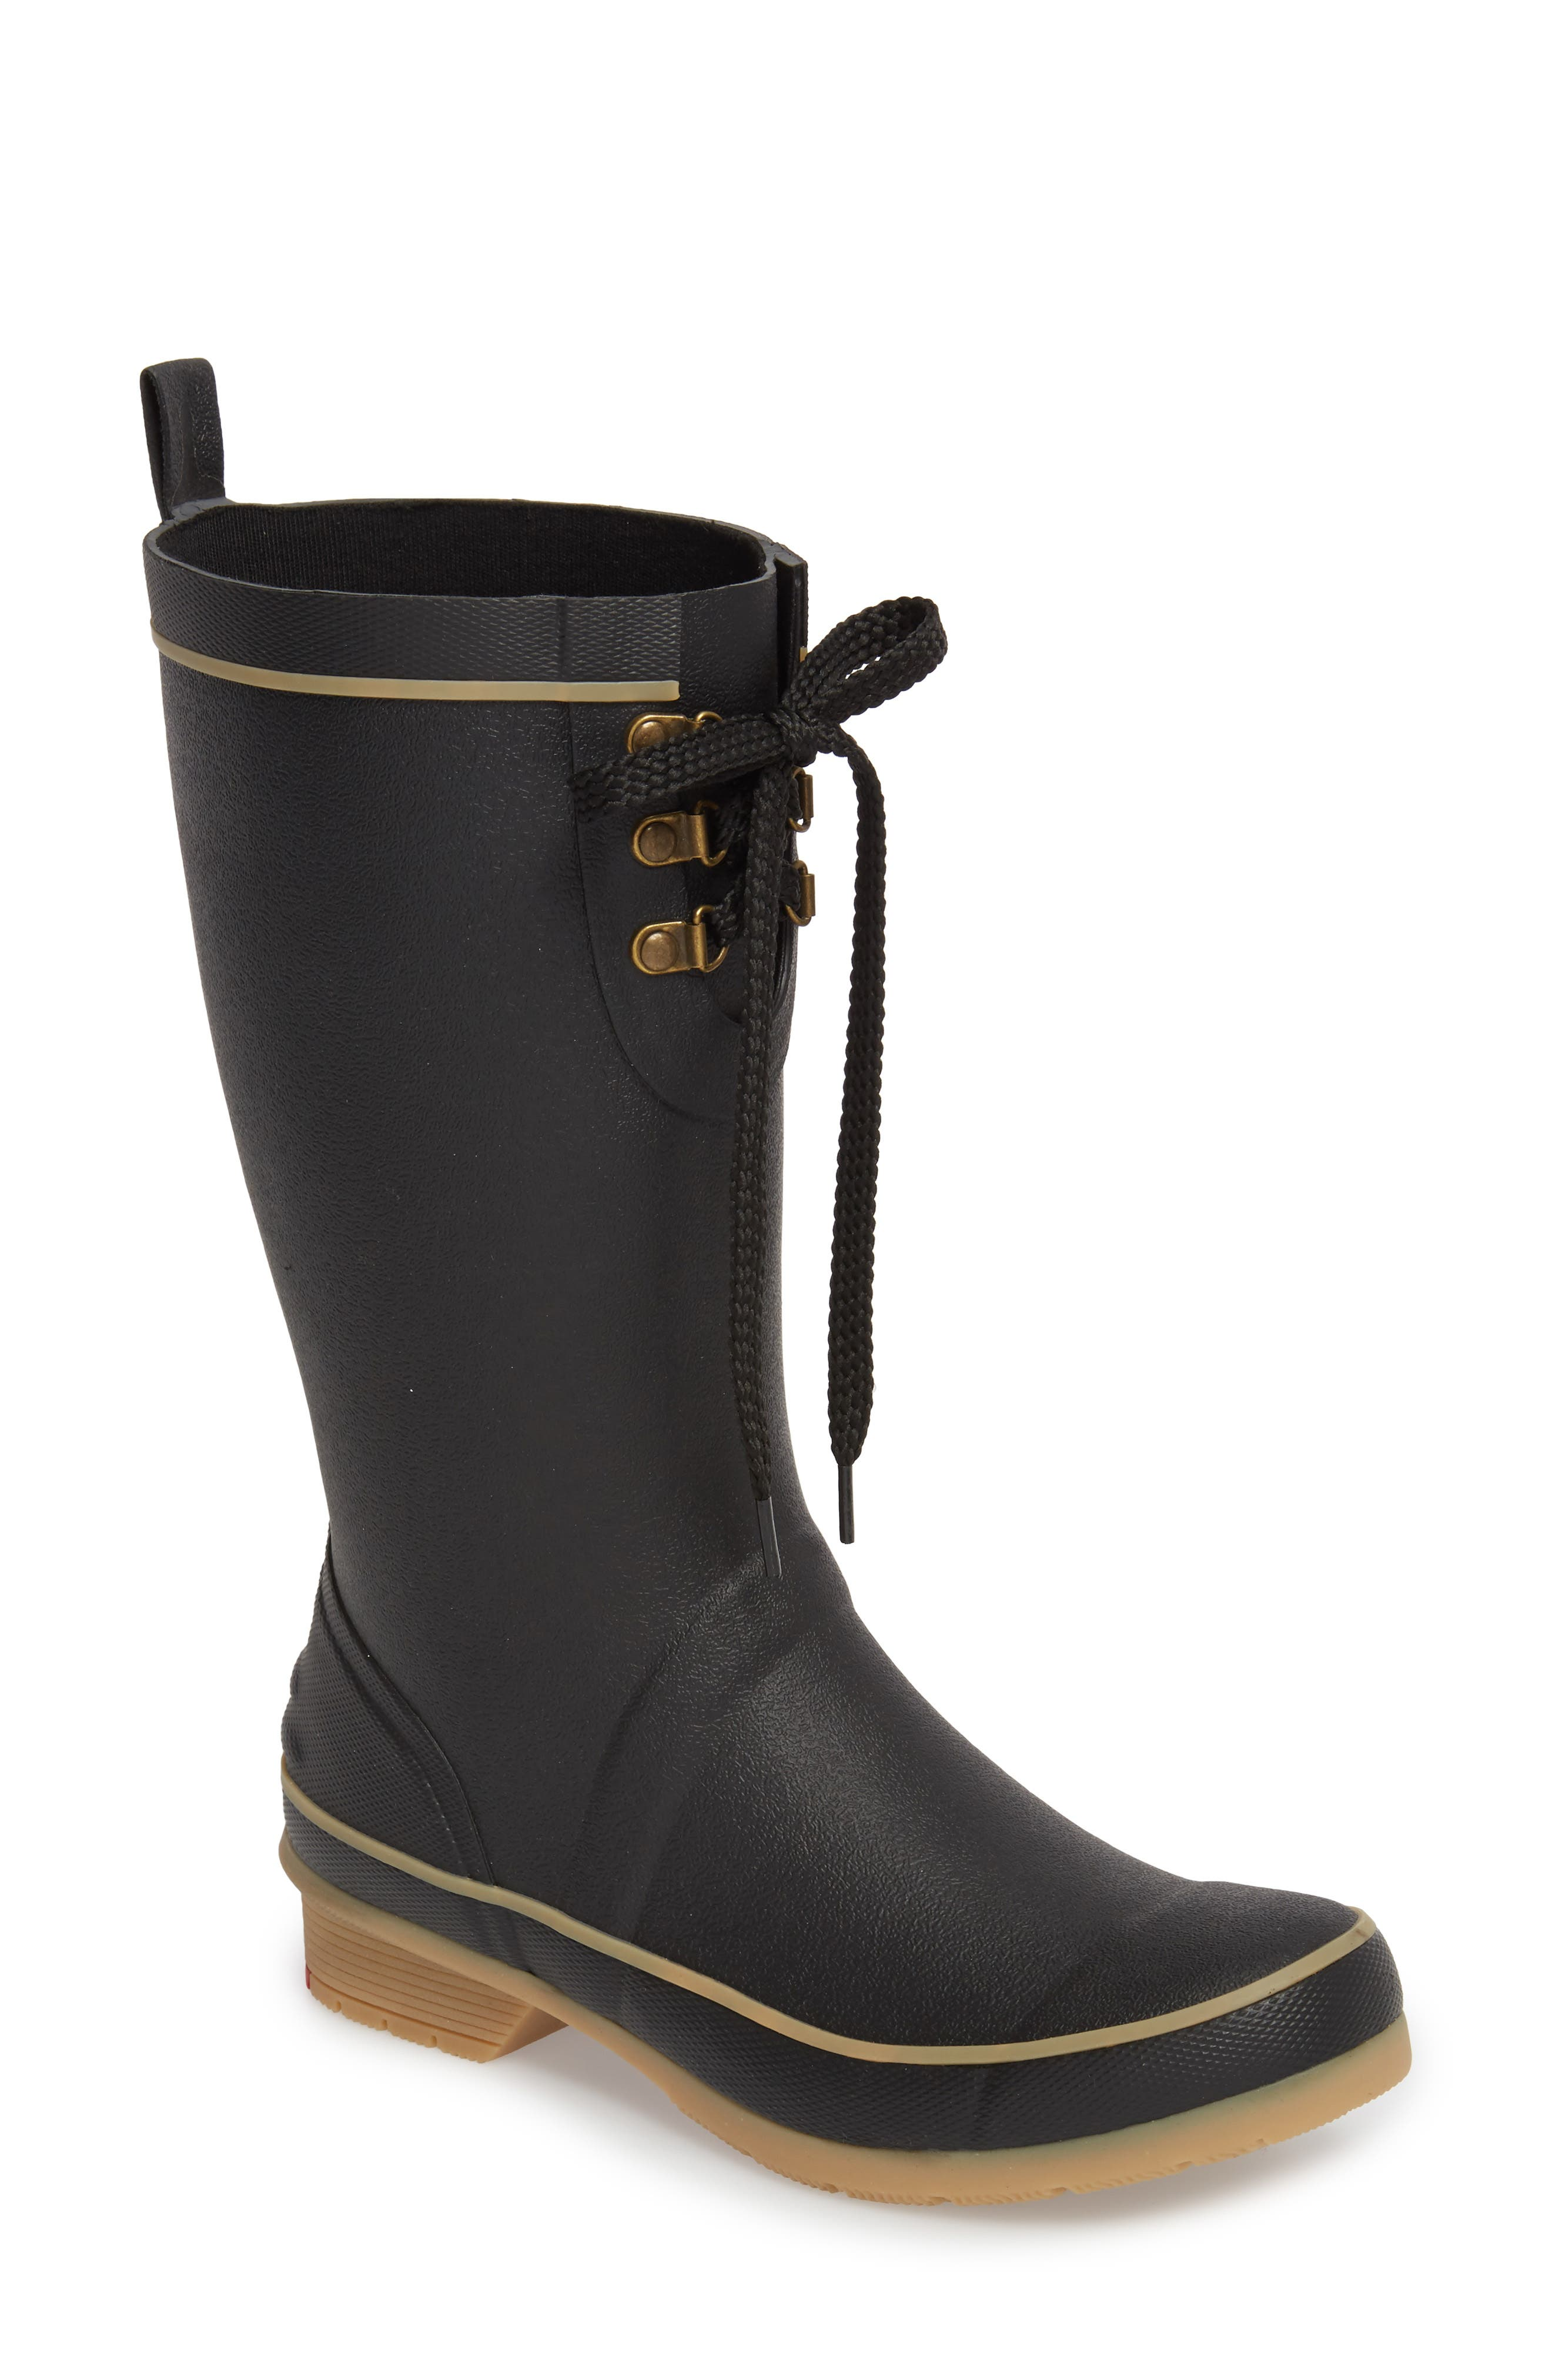 Whidbey Rain Boots,                             Main thumbnail 1, color,                             BLACK